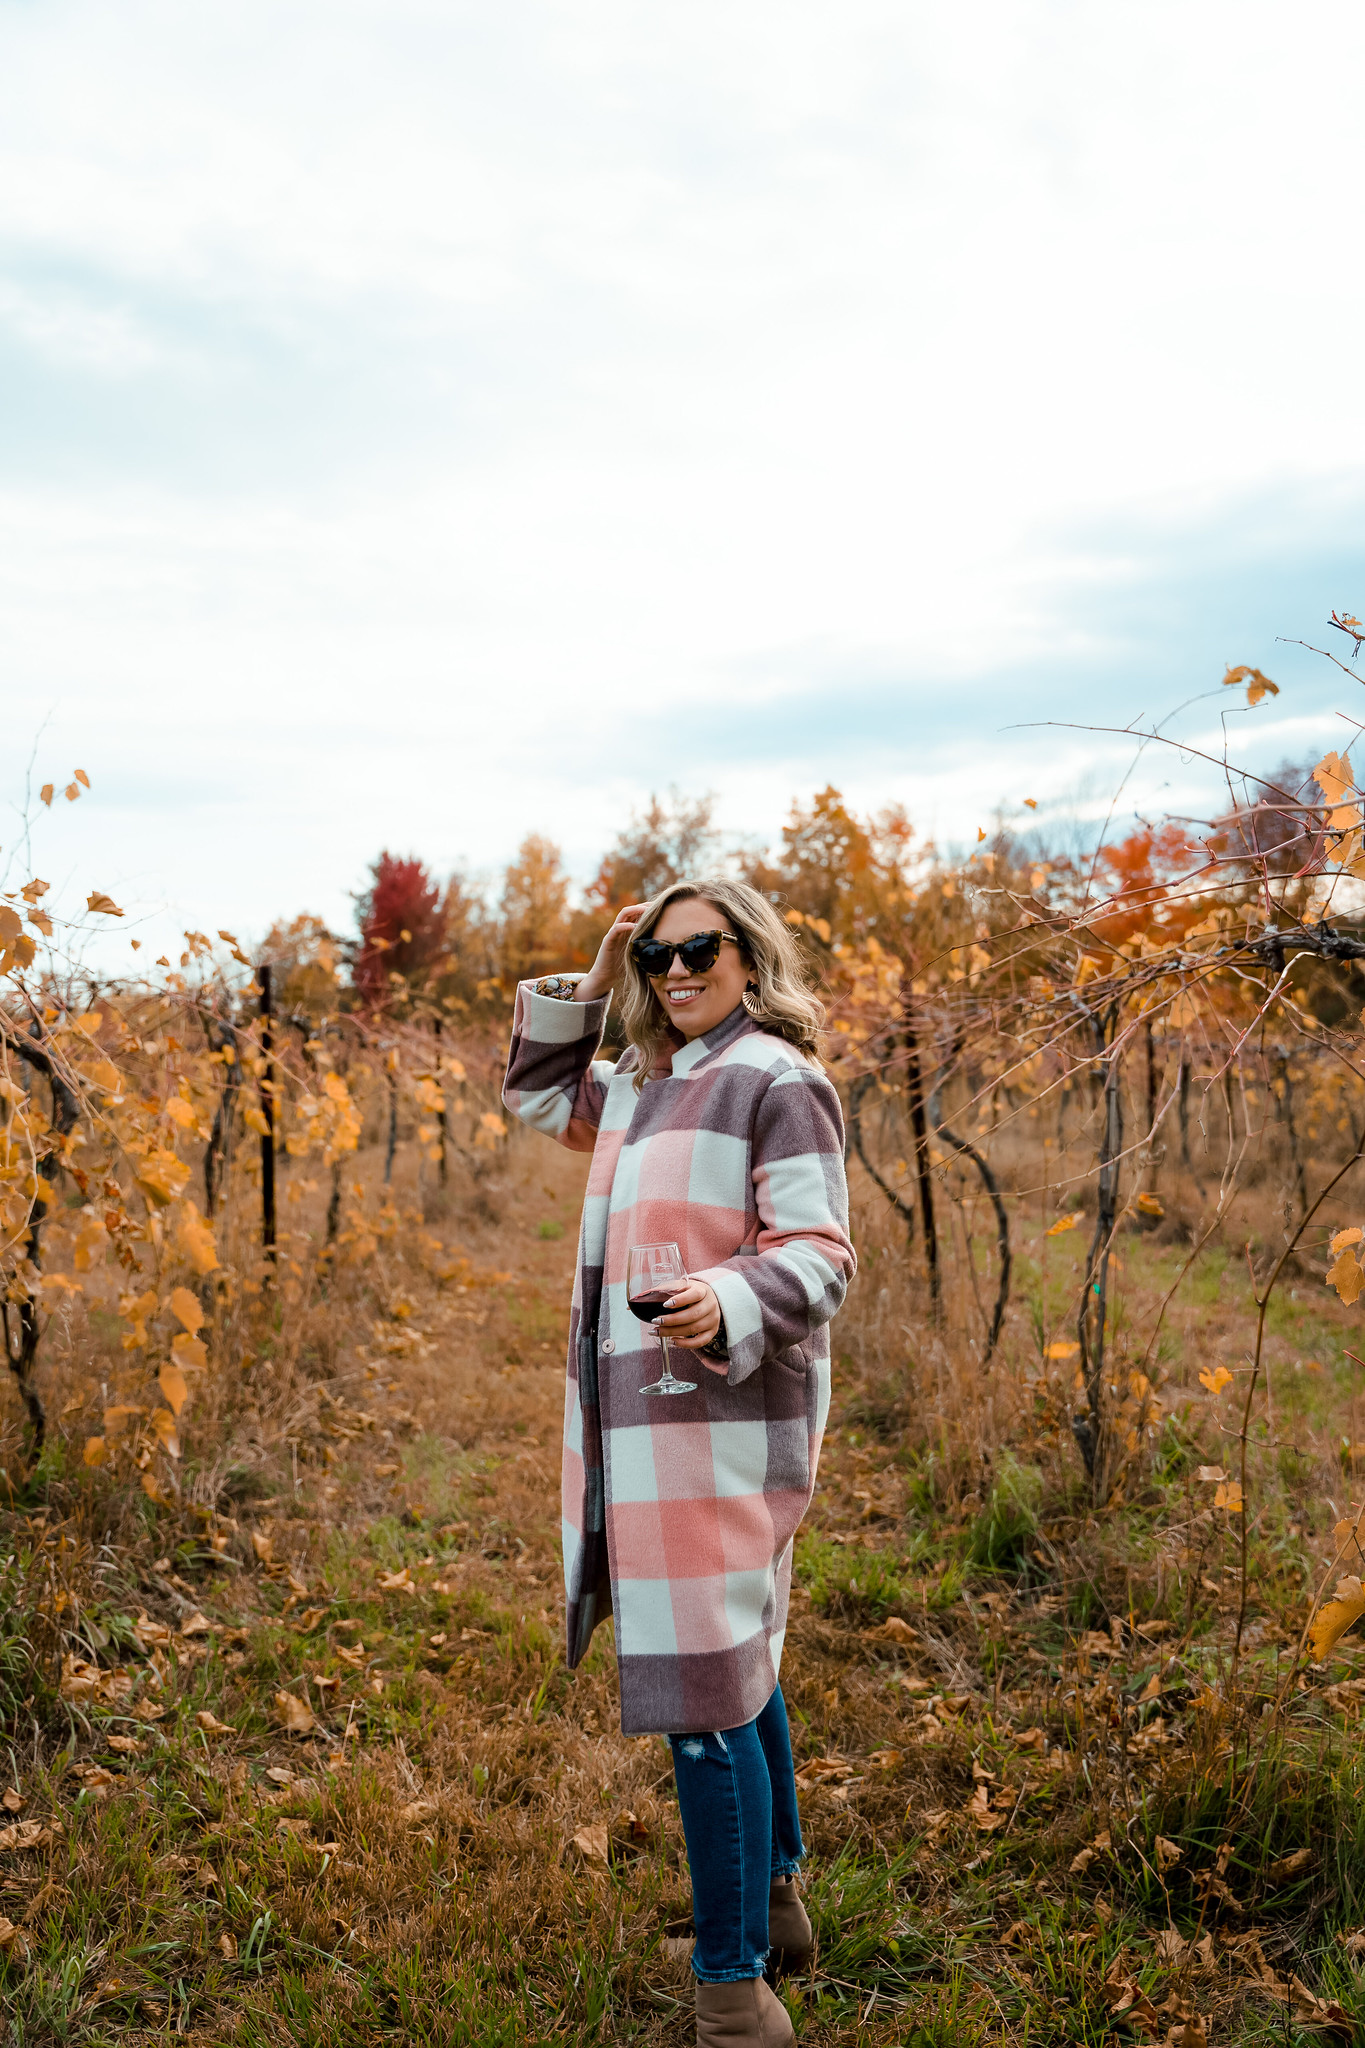 What to Wear to a Vineyard in Fall | Winery Outfit Inspiration | Pink Plaid Winter Coat | Shelburne Vineyard | What to Wear in Vermont in the Fall | Vermont Packing List for Fall | What to Wear in Vermont in October | What to Wear on a Fall Vacation | Fall Outfits